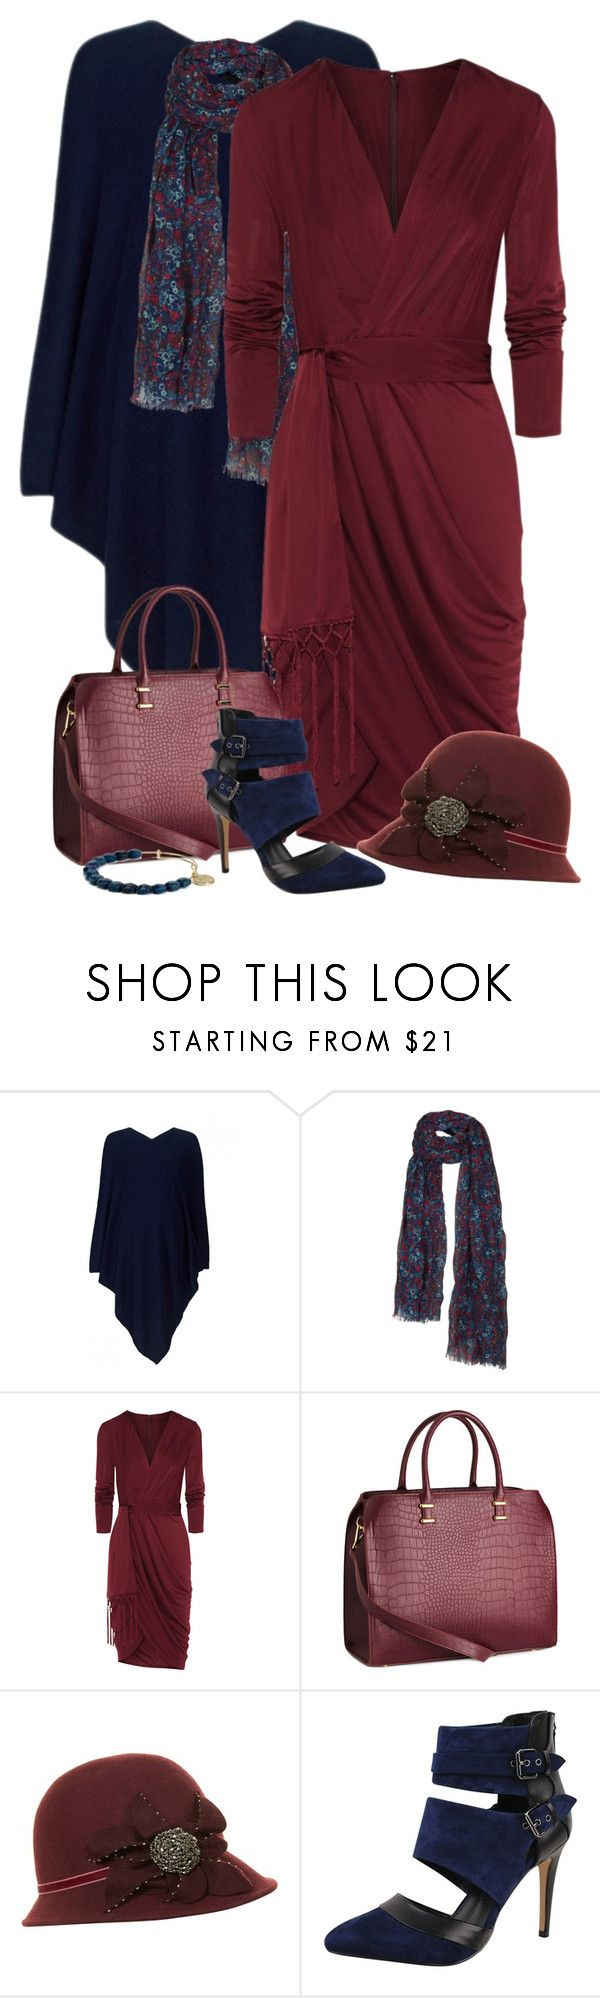 """""""Burgandy and Navy Poncho and Dress Outfit"""" by helenehrenhofer ❤ liked on Polyvore featuring 360 Sweater, Fat Face, Altuzarra, H&M, Dickins & Jones, Dolce Vita and Armani Exchange"""